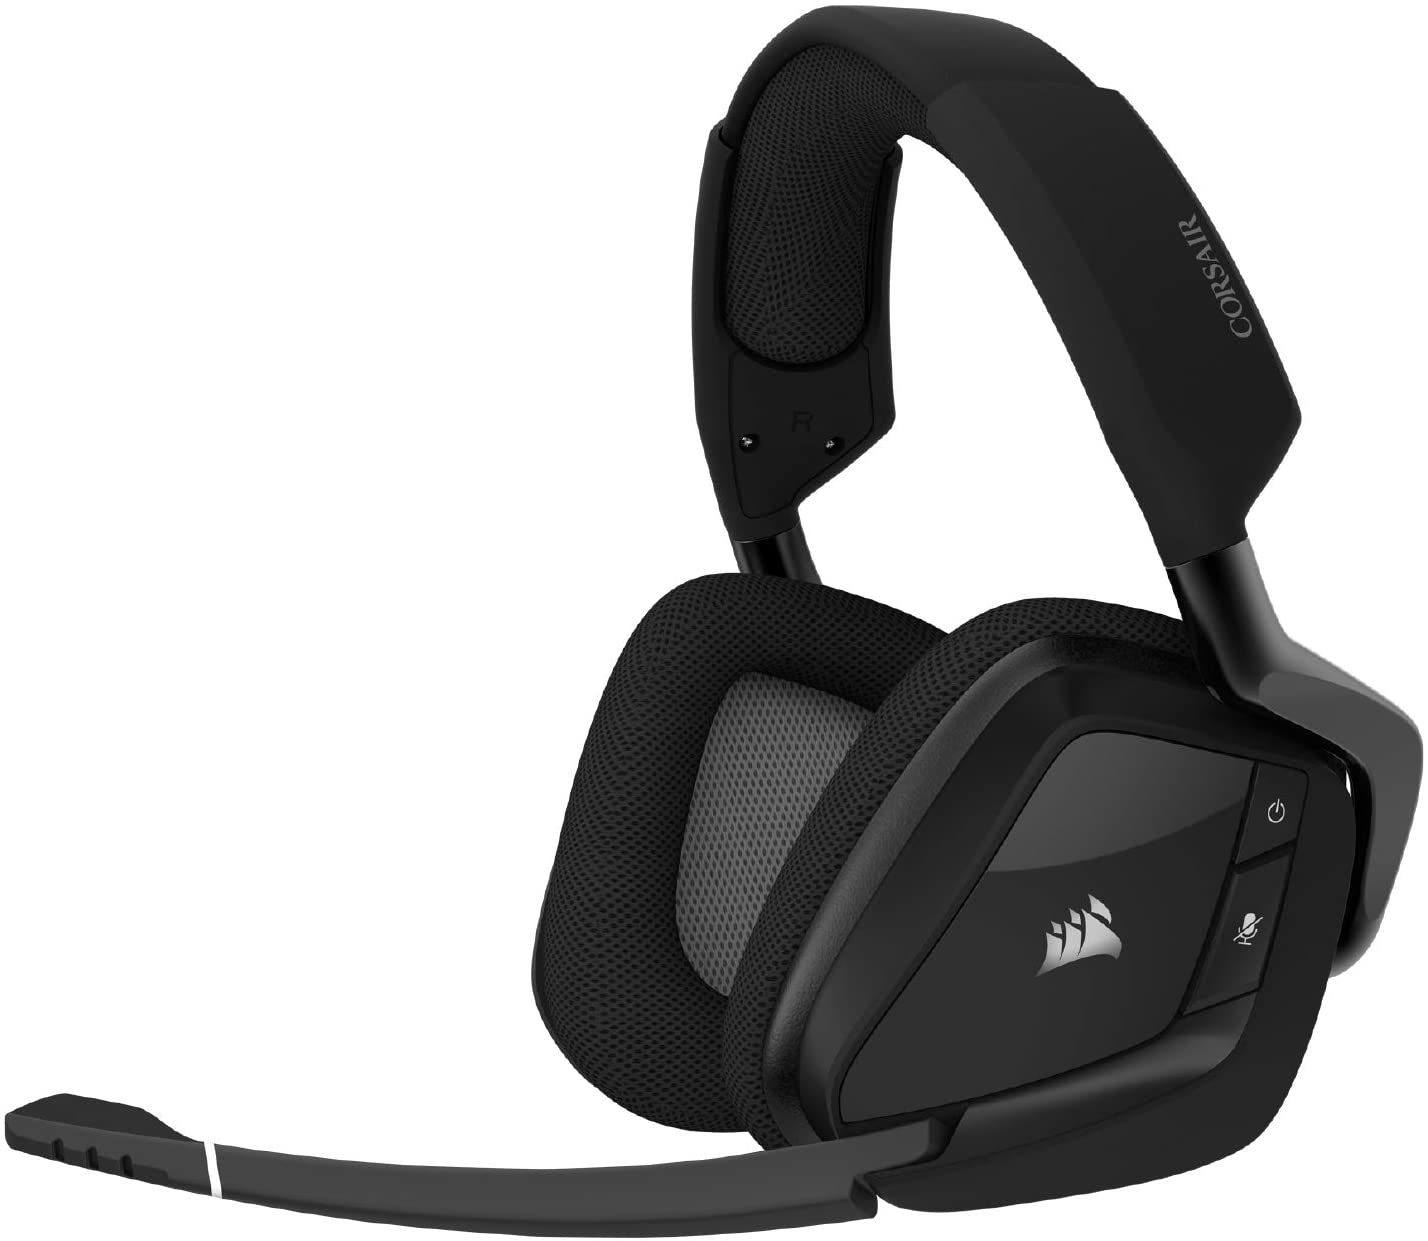 auriculares inalambricos Corsair Void RGB Elite 7.1 Surround